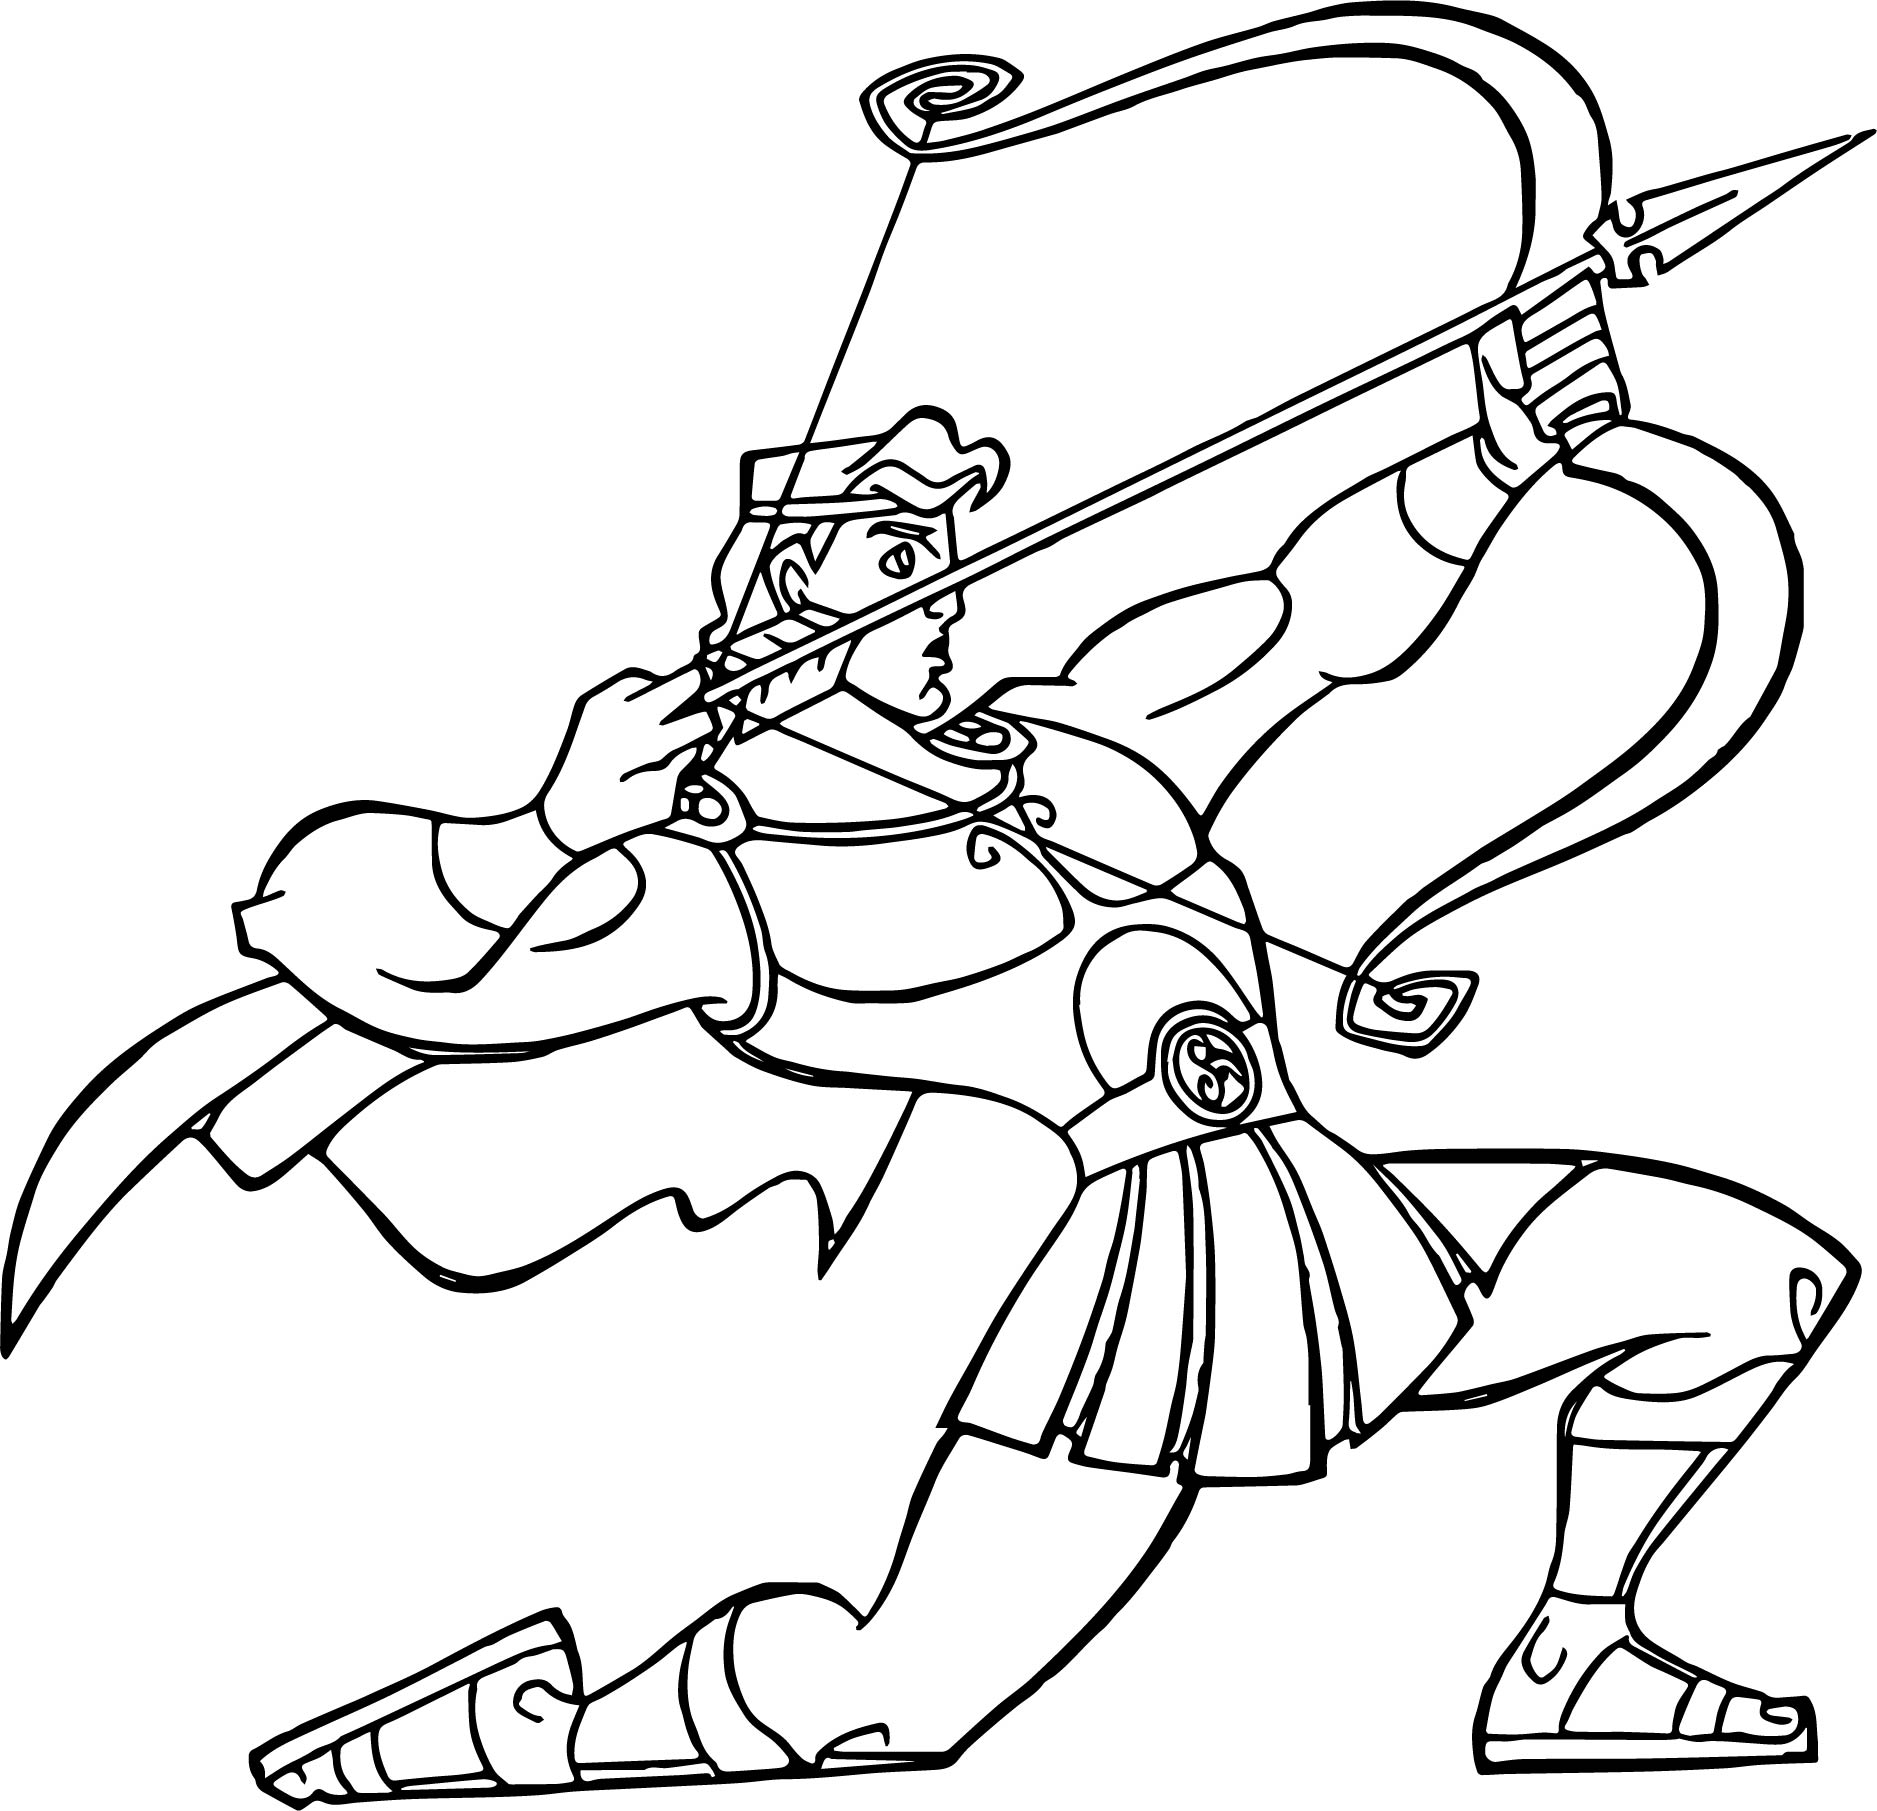 Hercules Ules Aiming Coloring Pages